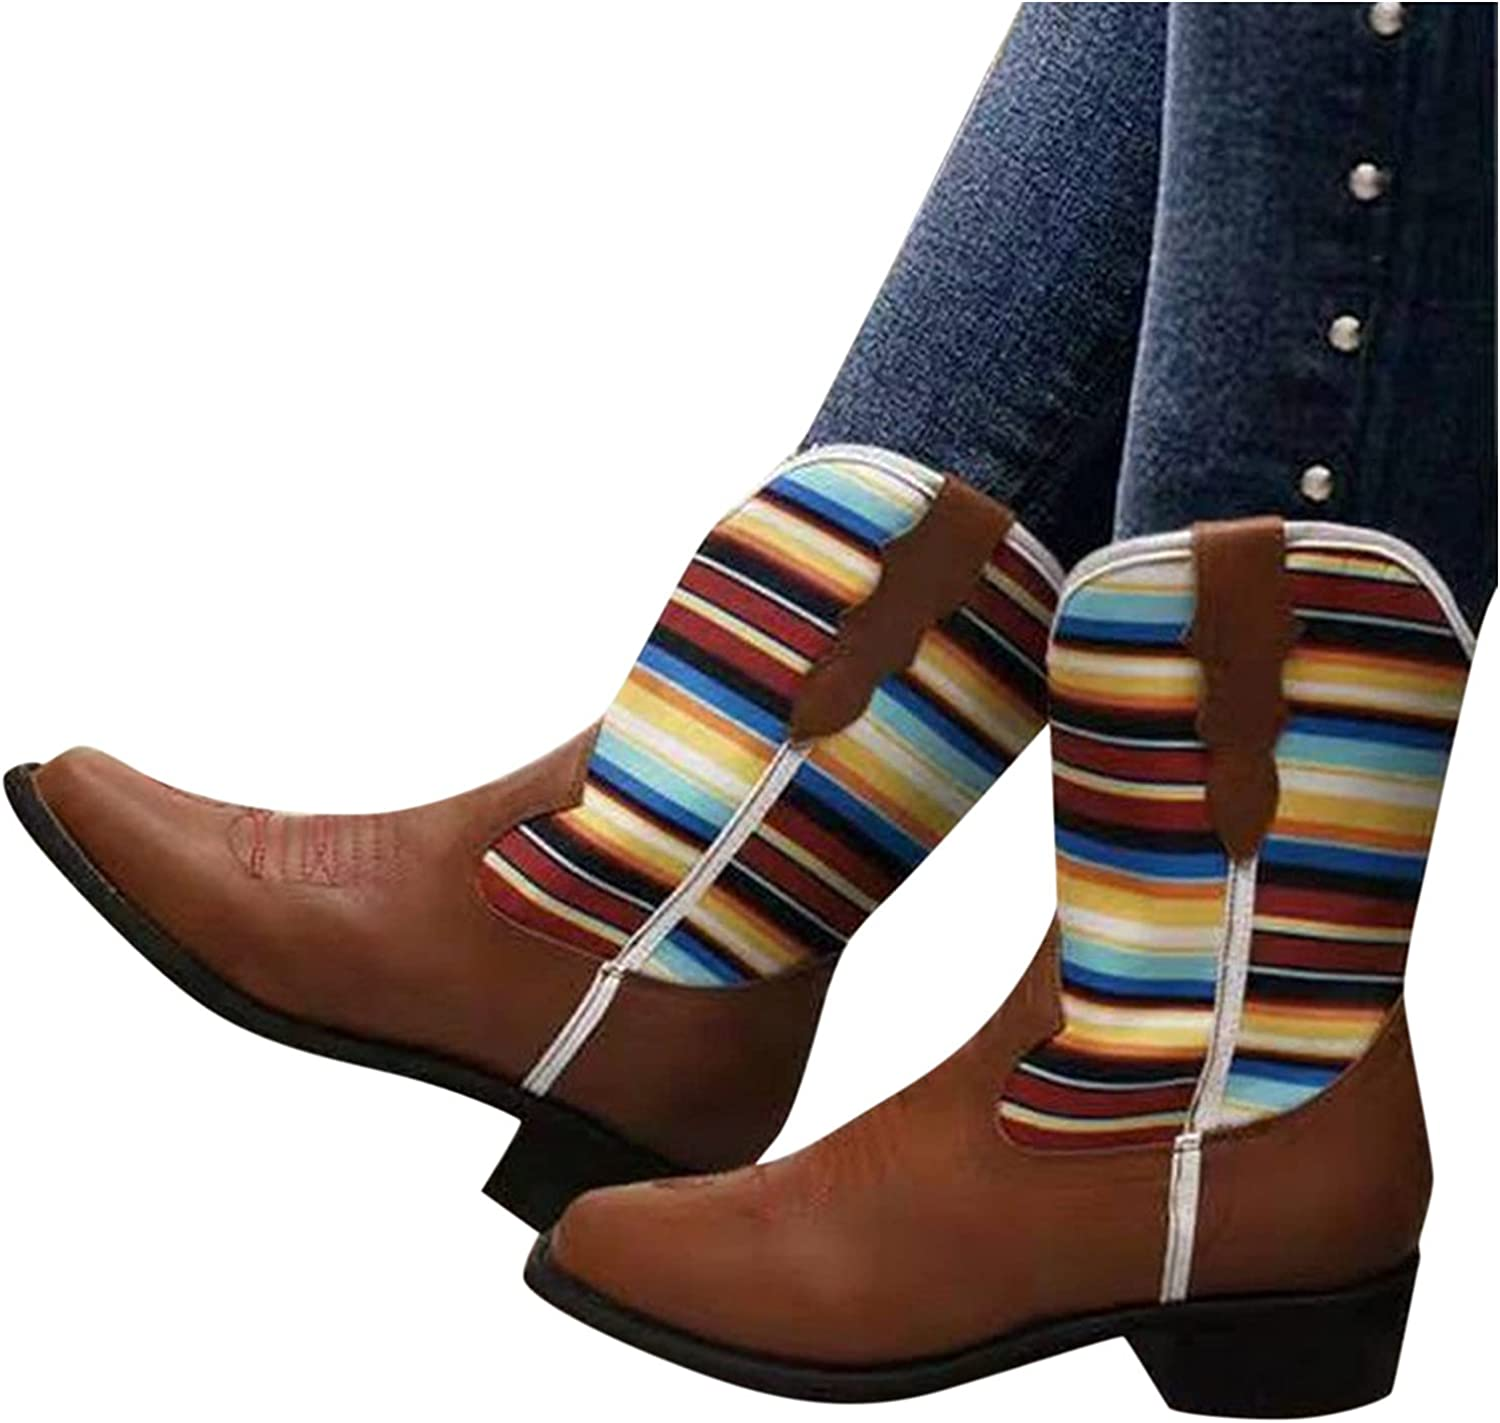 Hbeylia Cowboy Boots For Women Vintage Leather Splicing Rainbow Pointed Toe Western Cowgirls Boots Retro Chunky Low Heels Wide Mid Calf Short Boots For Riding Motorcycle